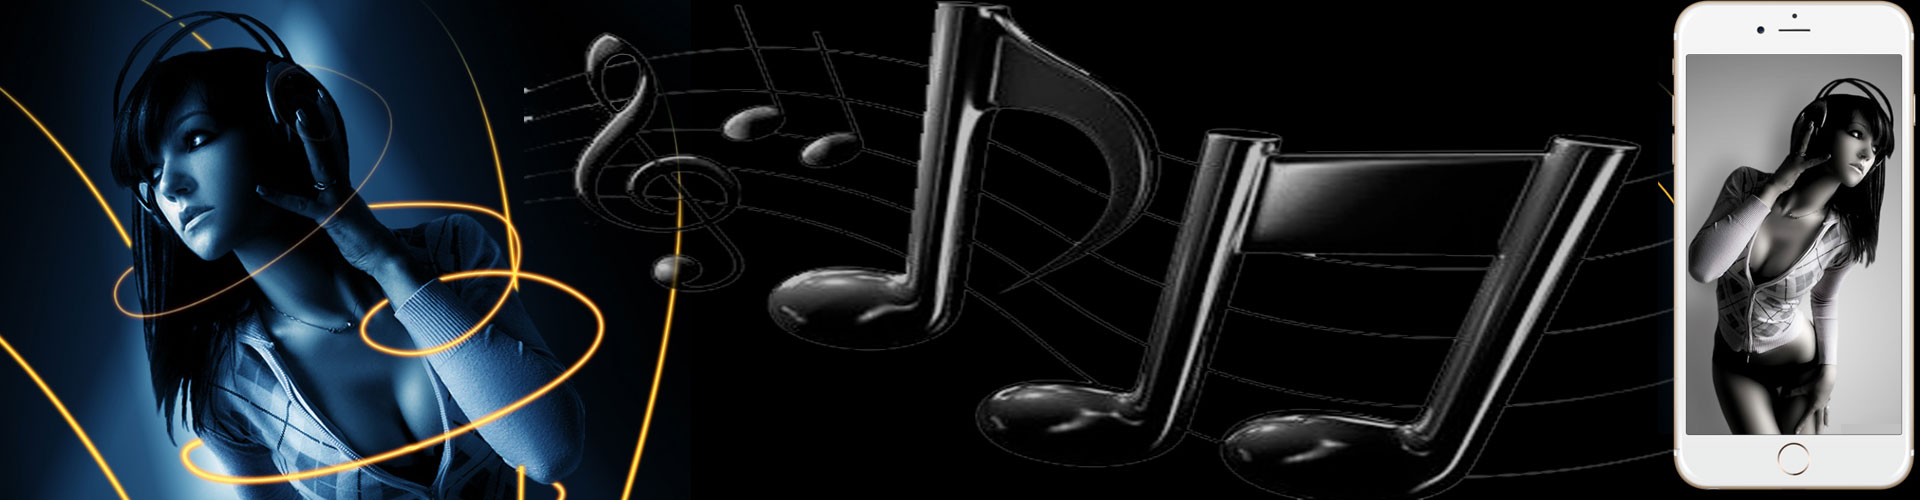 free jazz ringtones for android